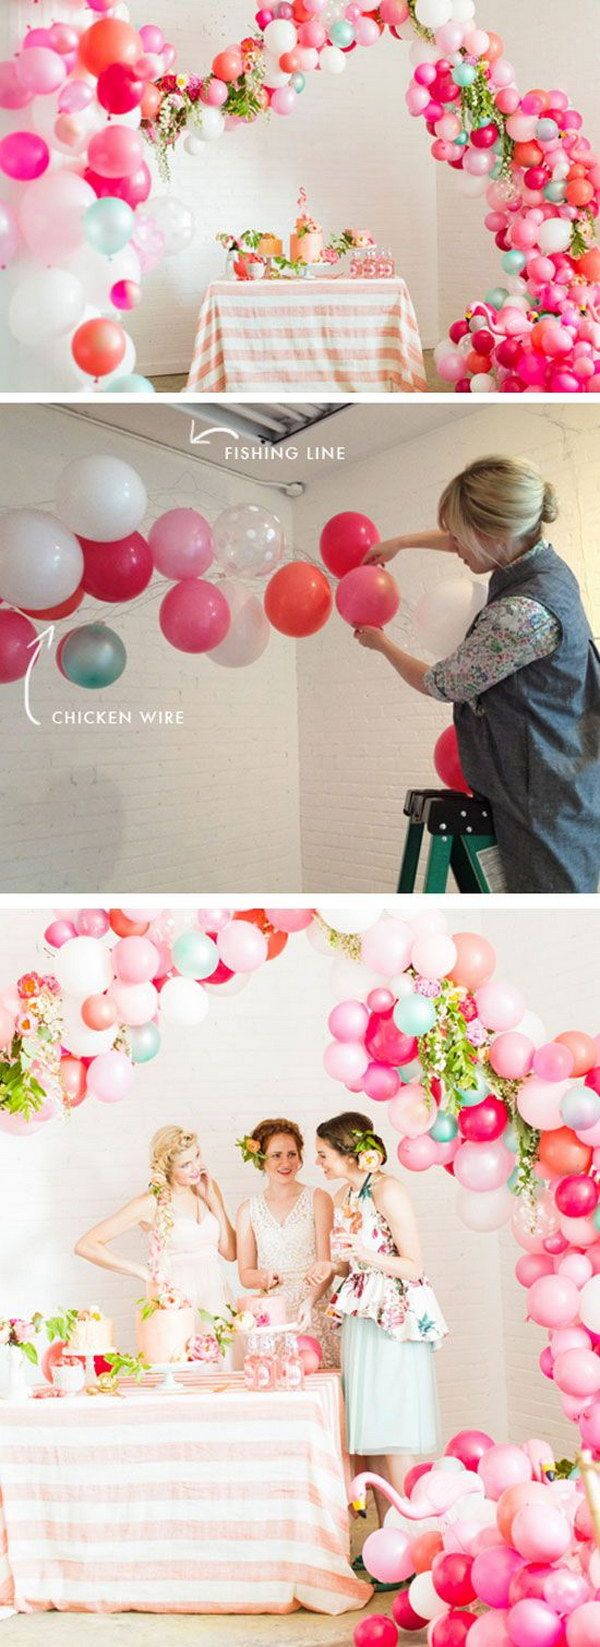 Bonafidebride diy project sweet whimsical paper lanterns - 1 Whimsical Balloon Arch With Tutorials